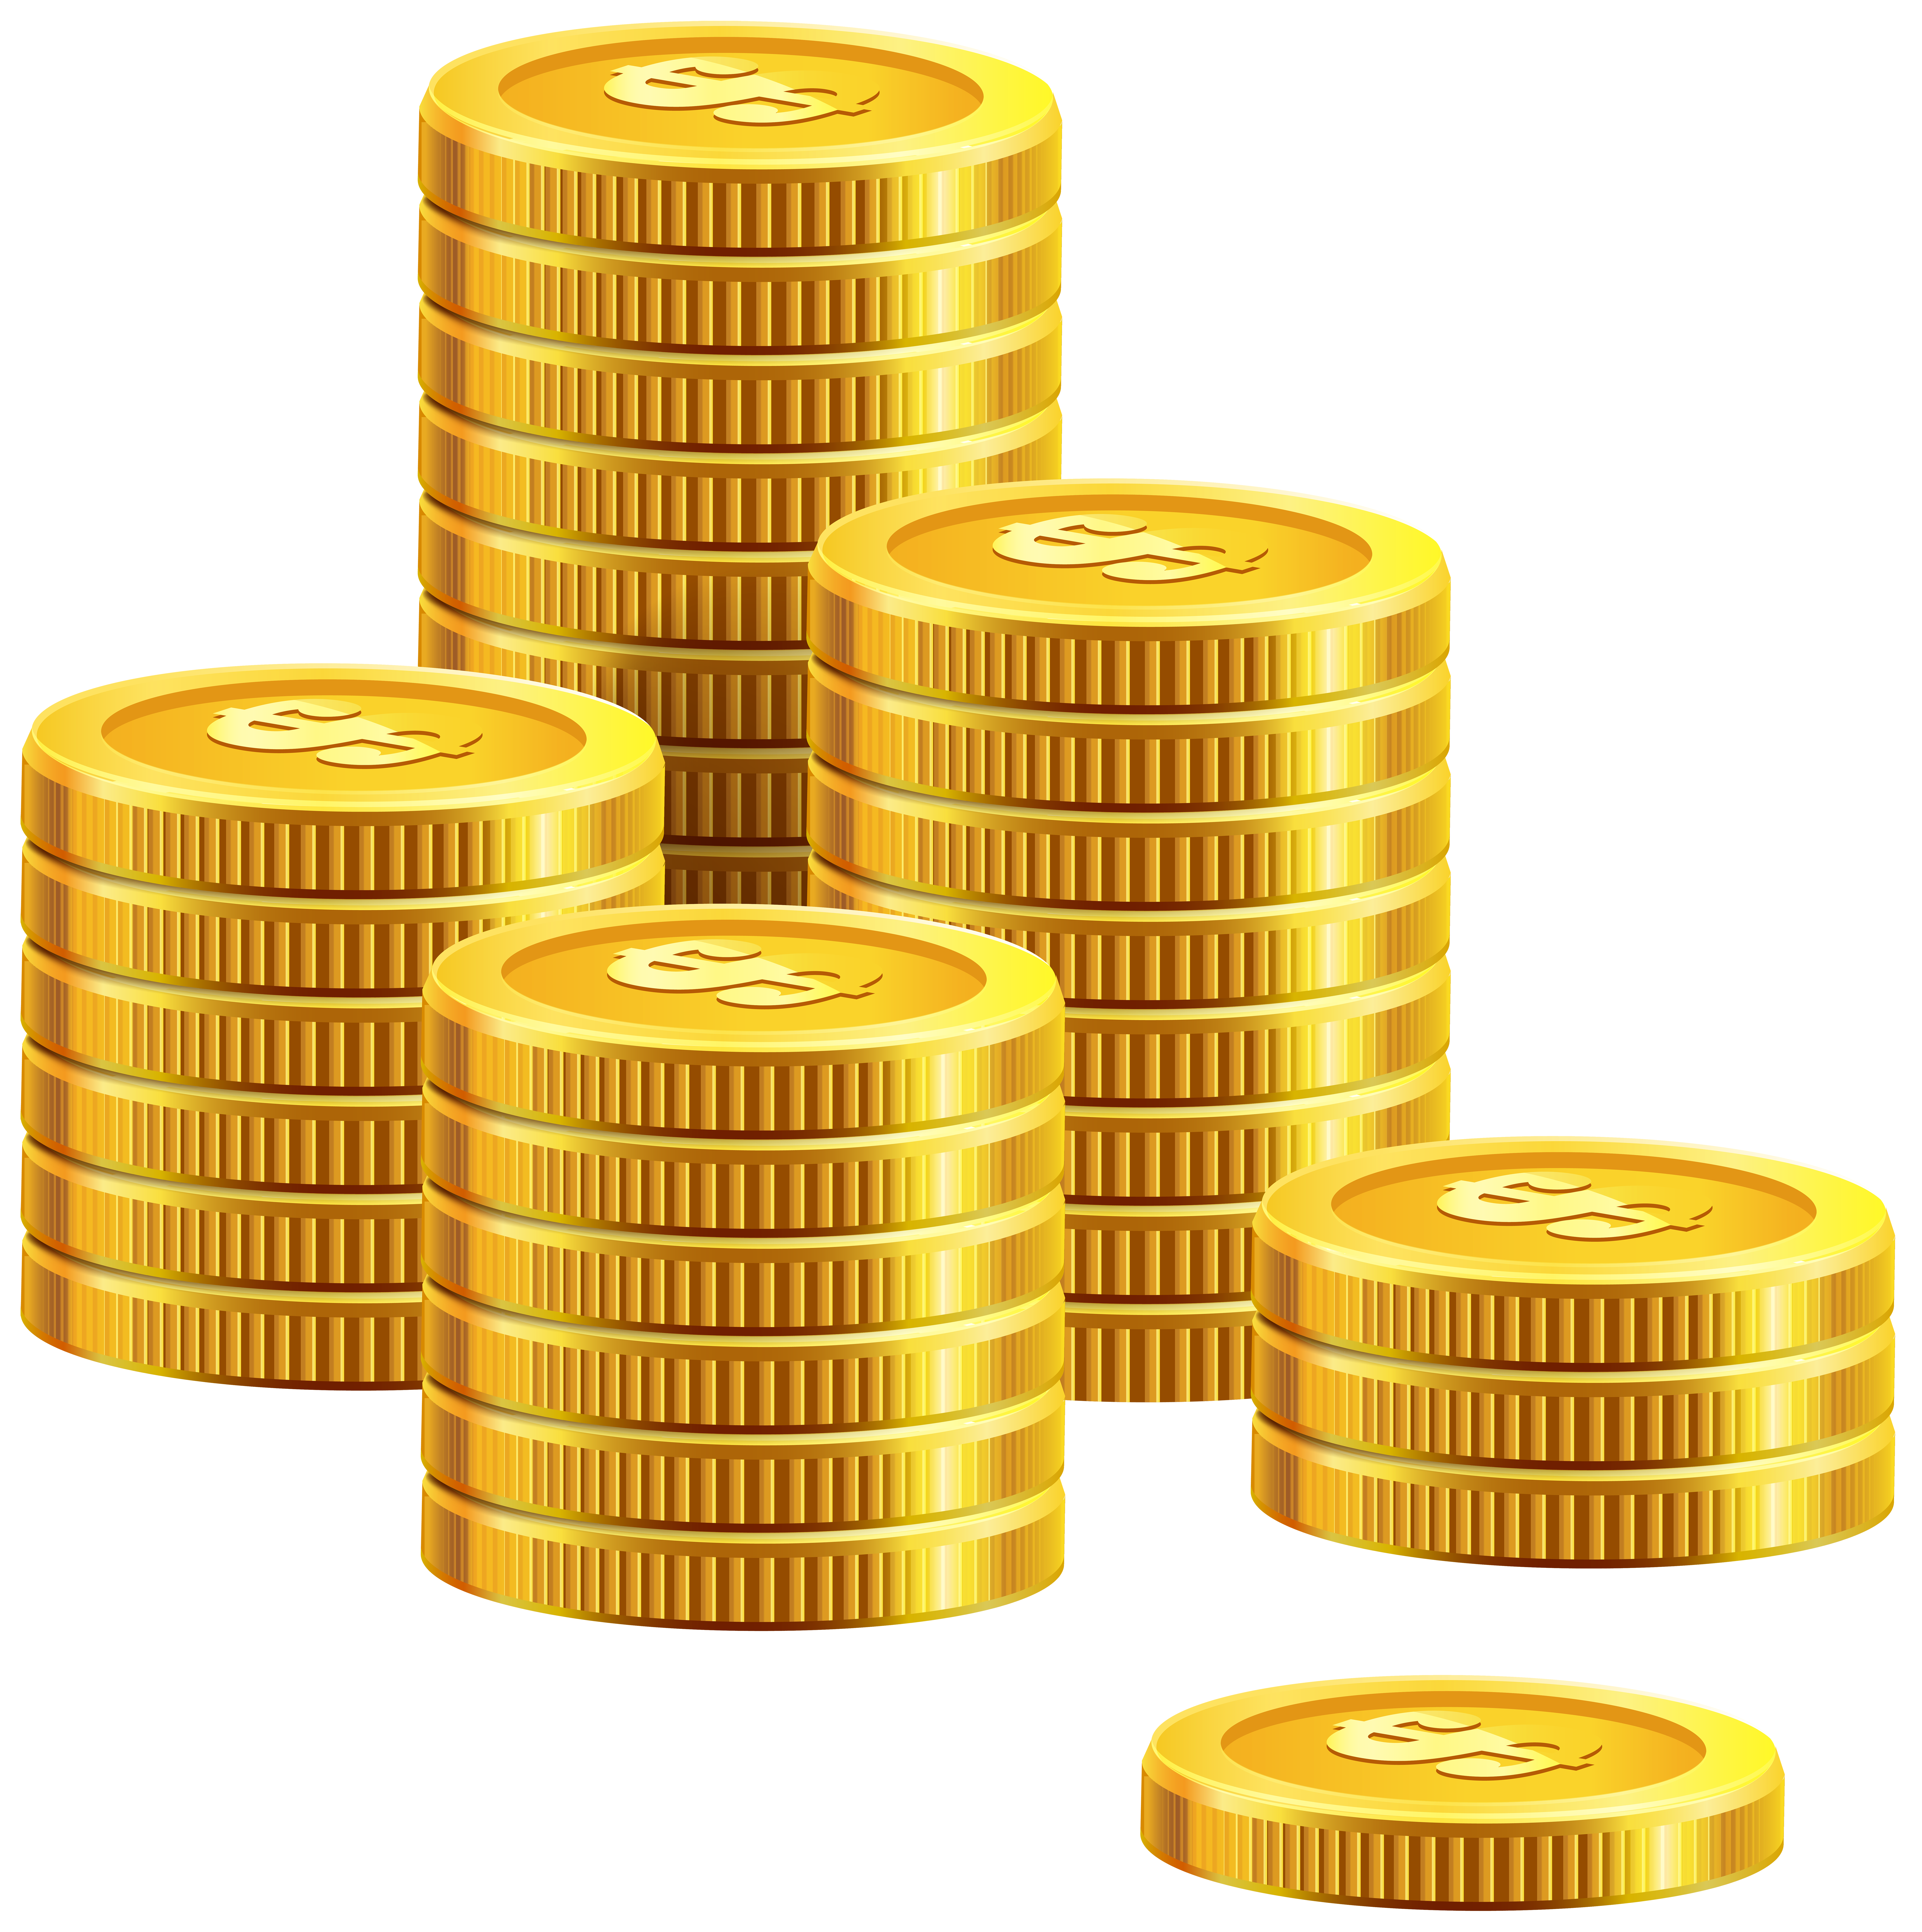 Pile of Coins PNG Clip Art.